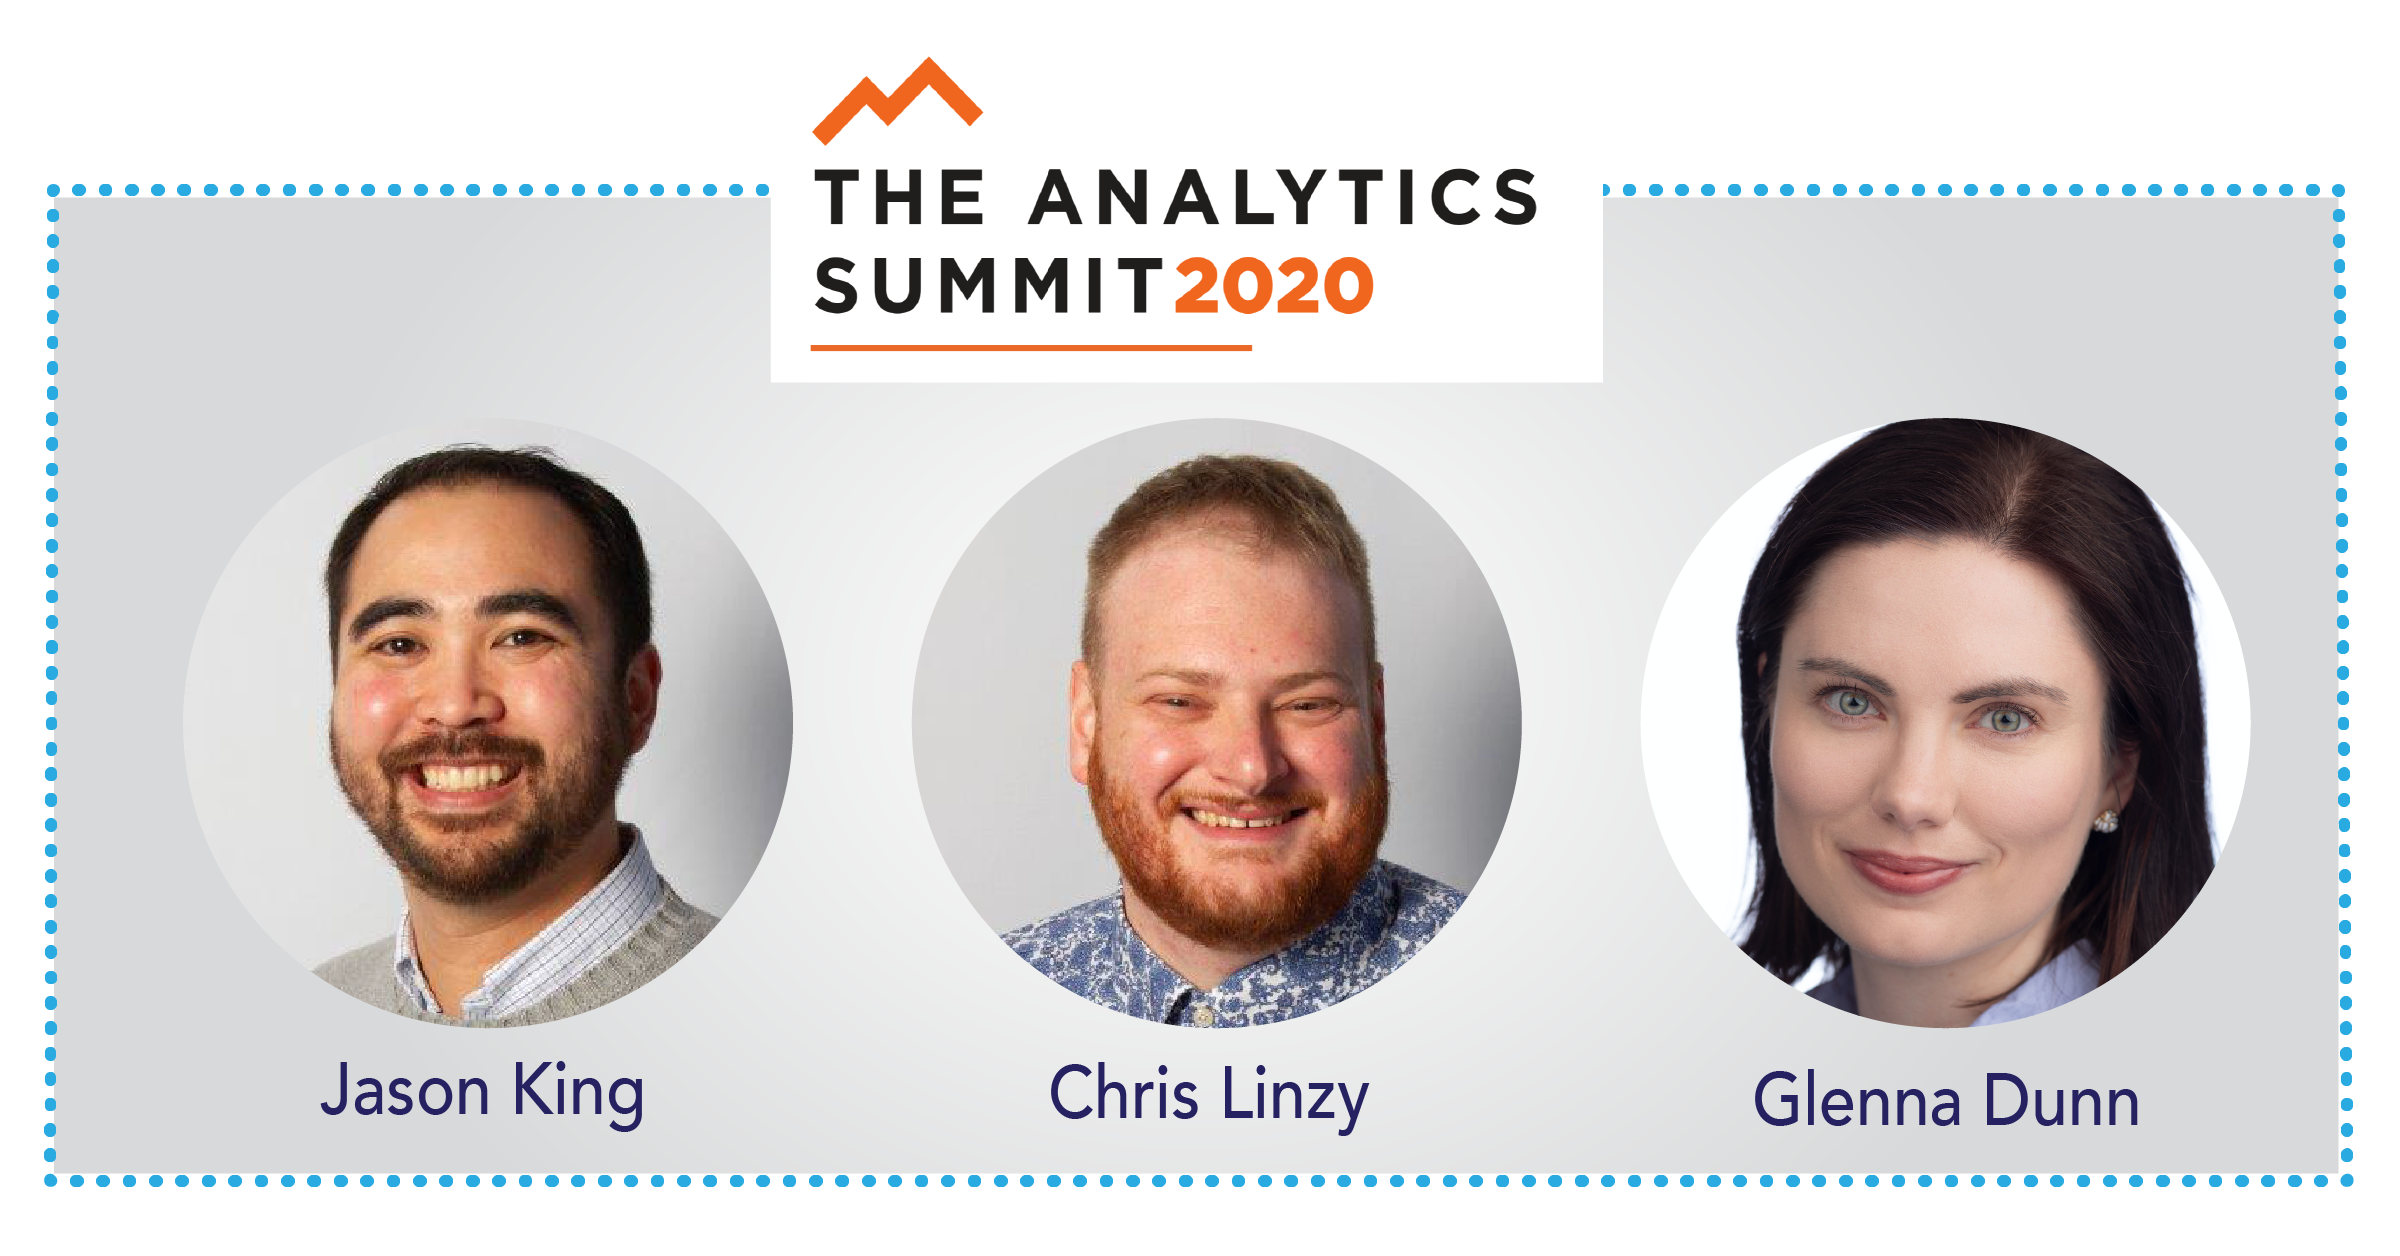 XSOLIS Data Science Leaders Speak at Premiere Data & Analytics Event